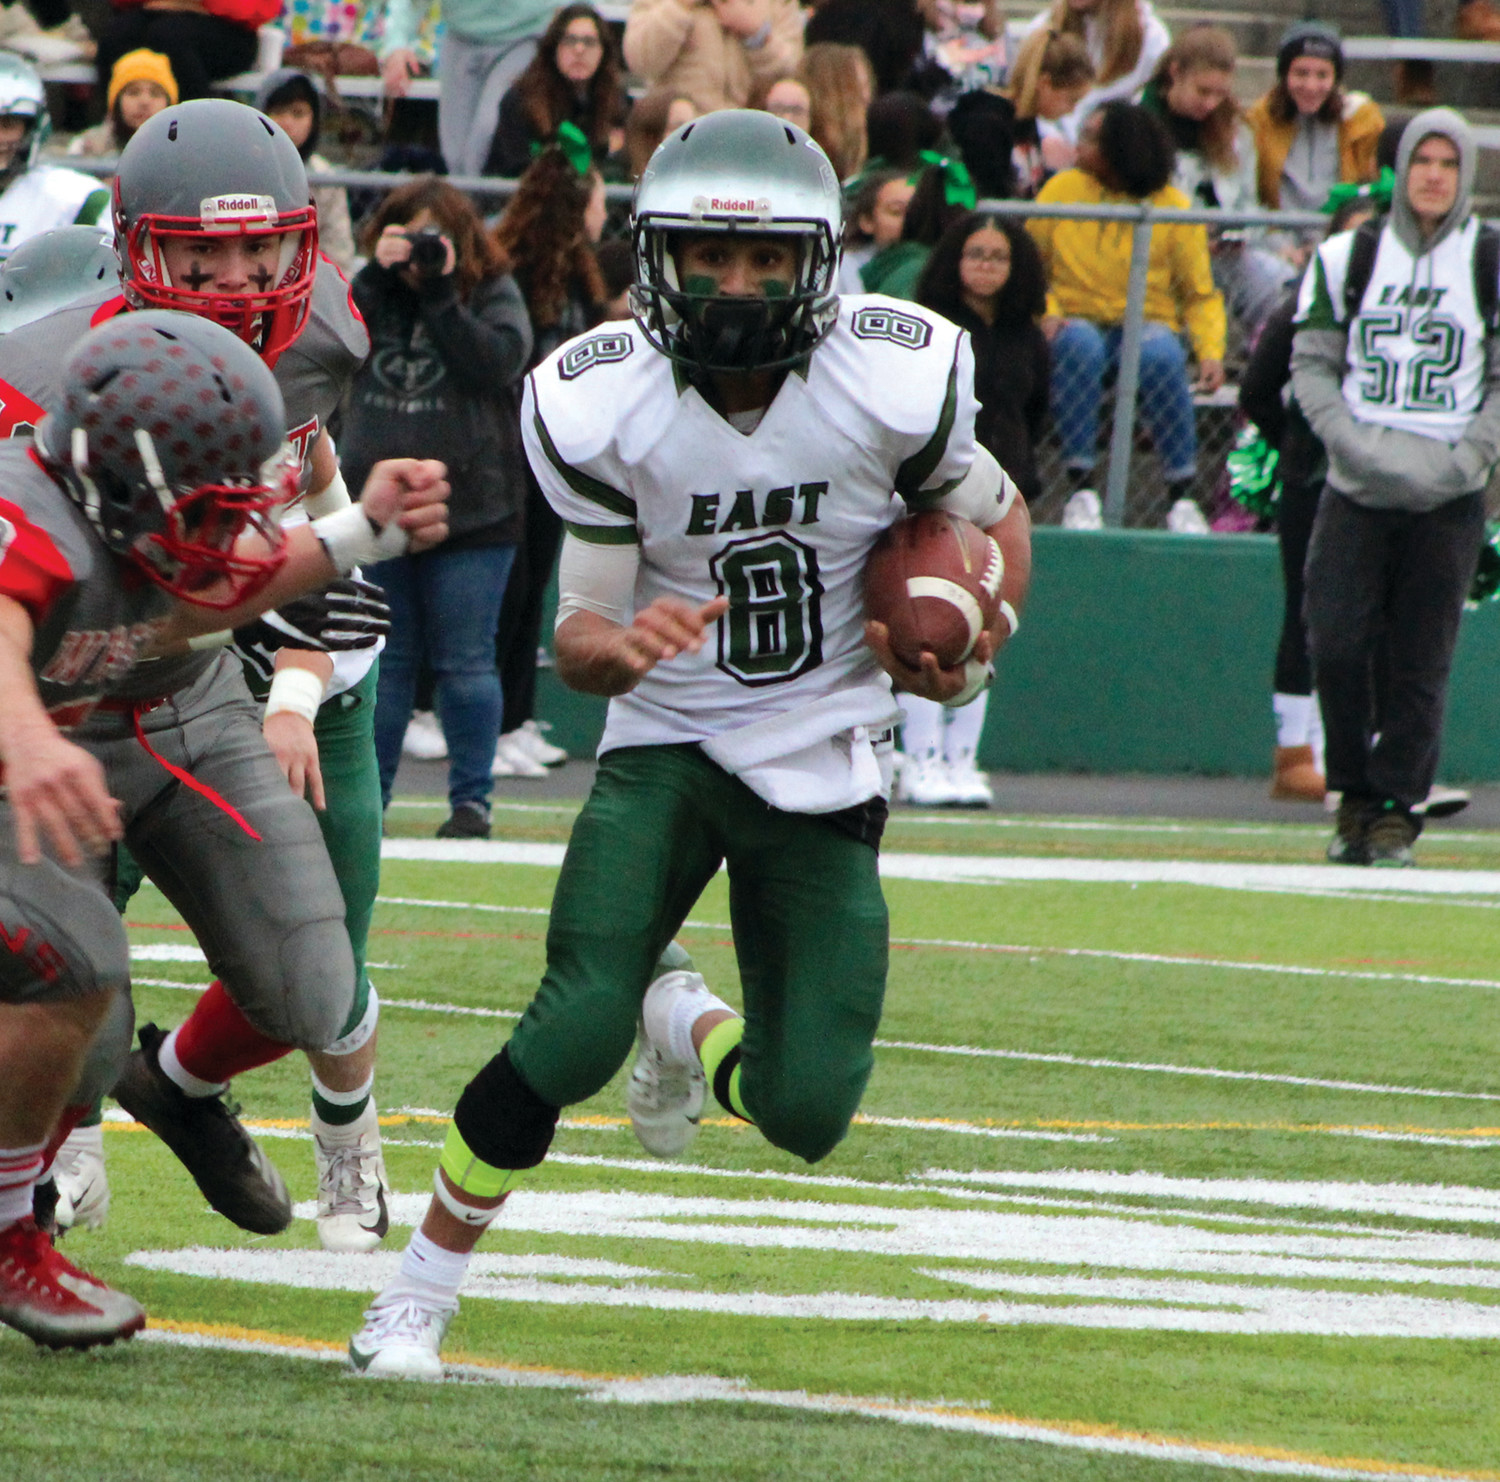 ON THE MOVE: Cranston East's Robenson Antoine picks up some yards.